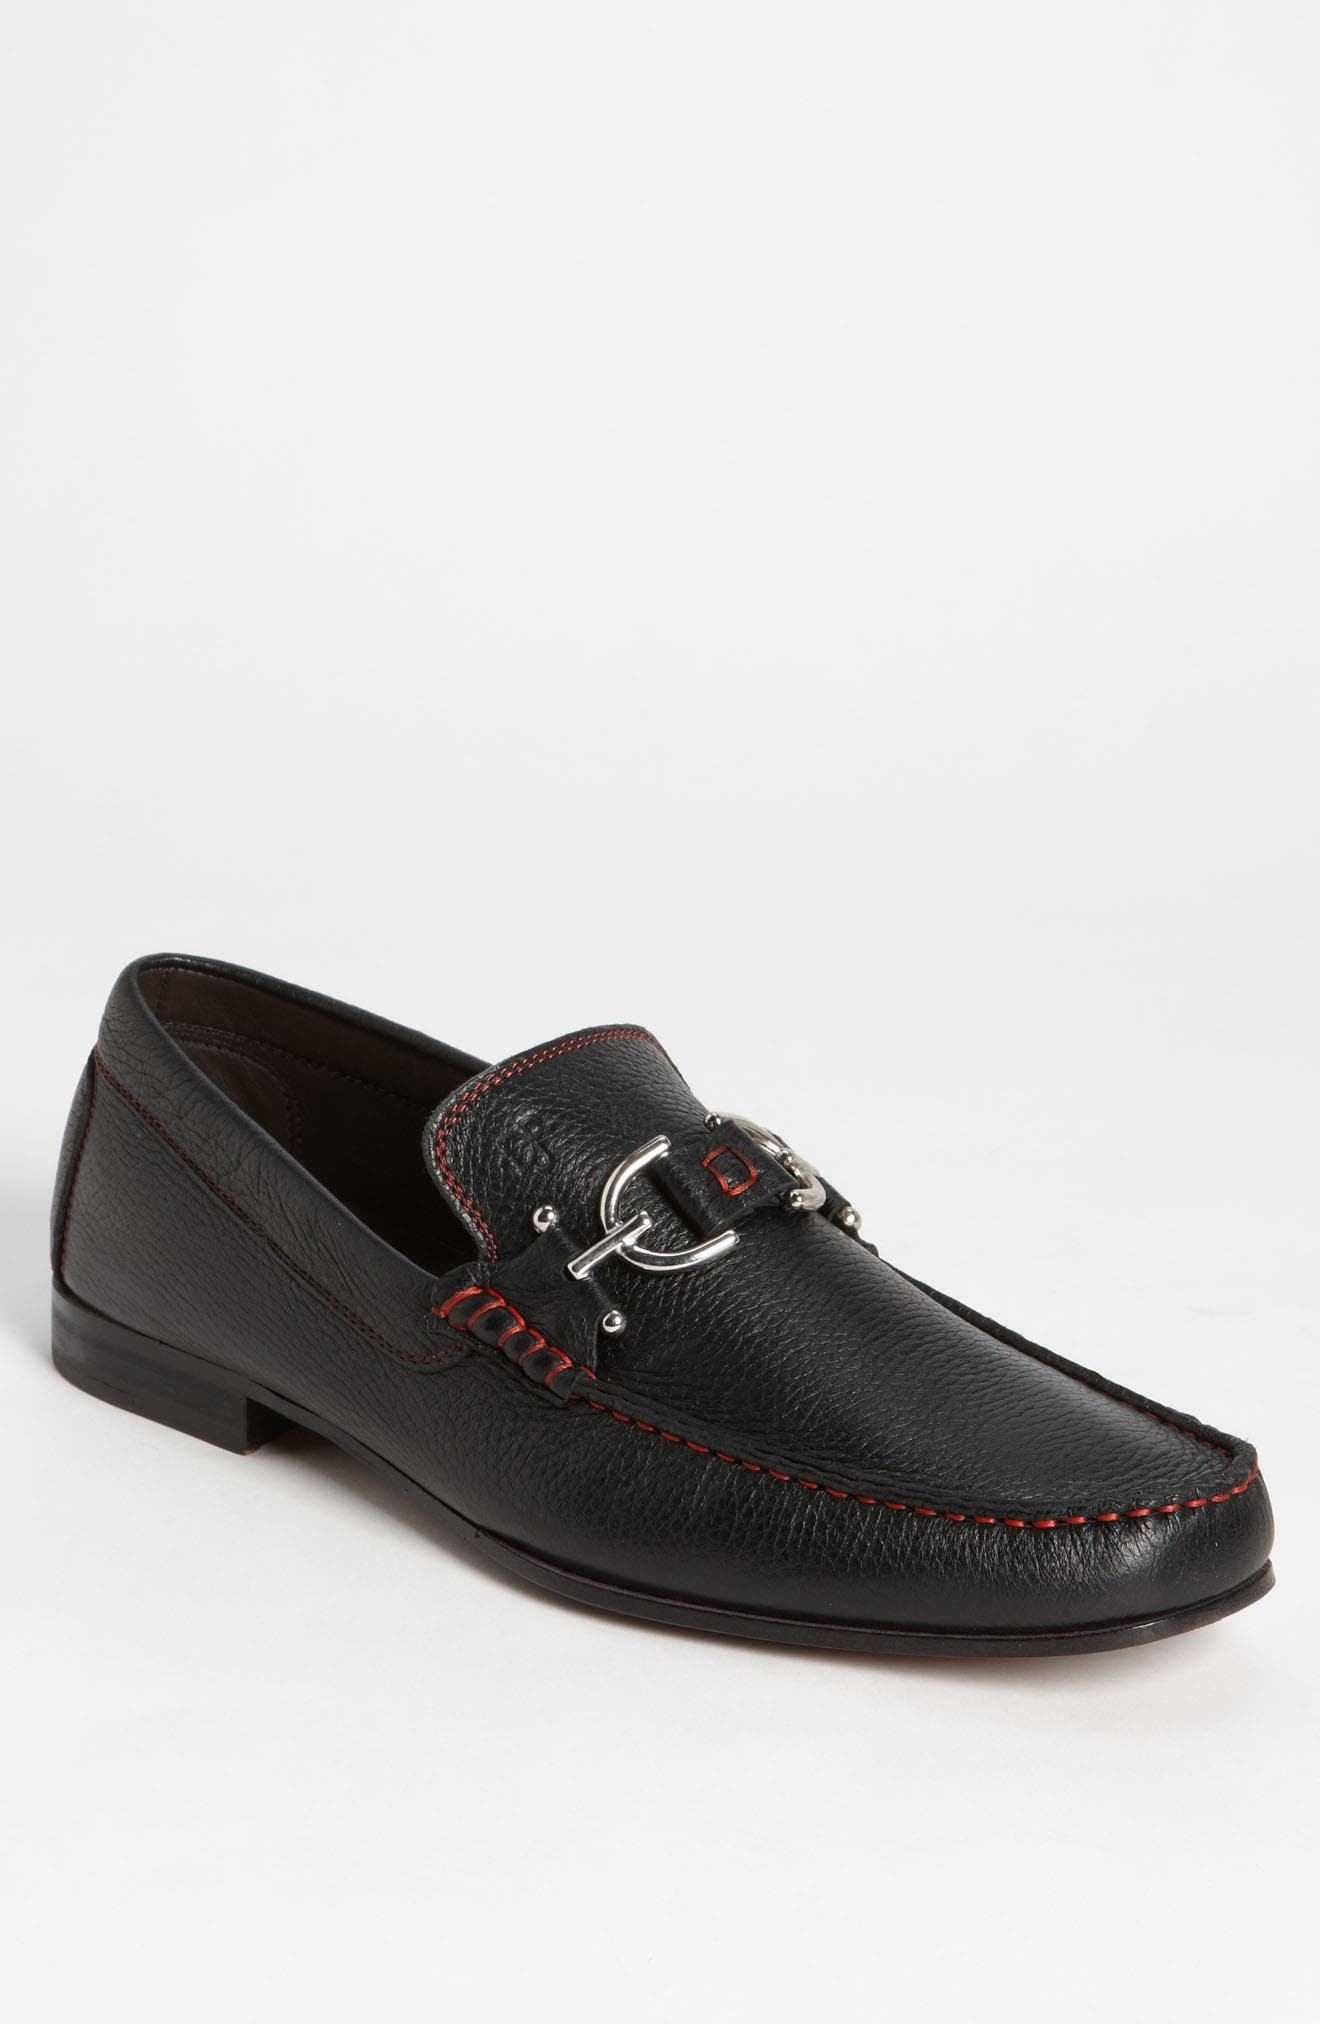 Dacio II Loafer,                             Alternate thumbnail 2, color,                             BLACK/ BLACK LEATHER